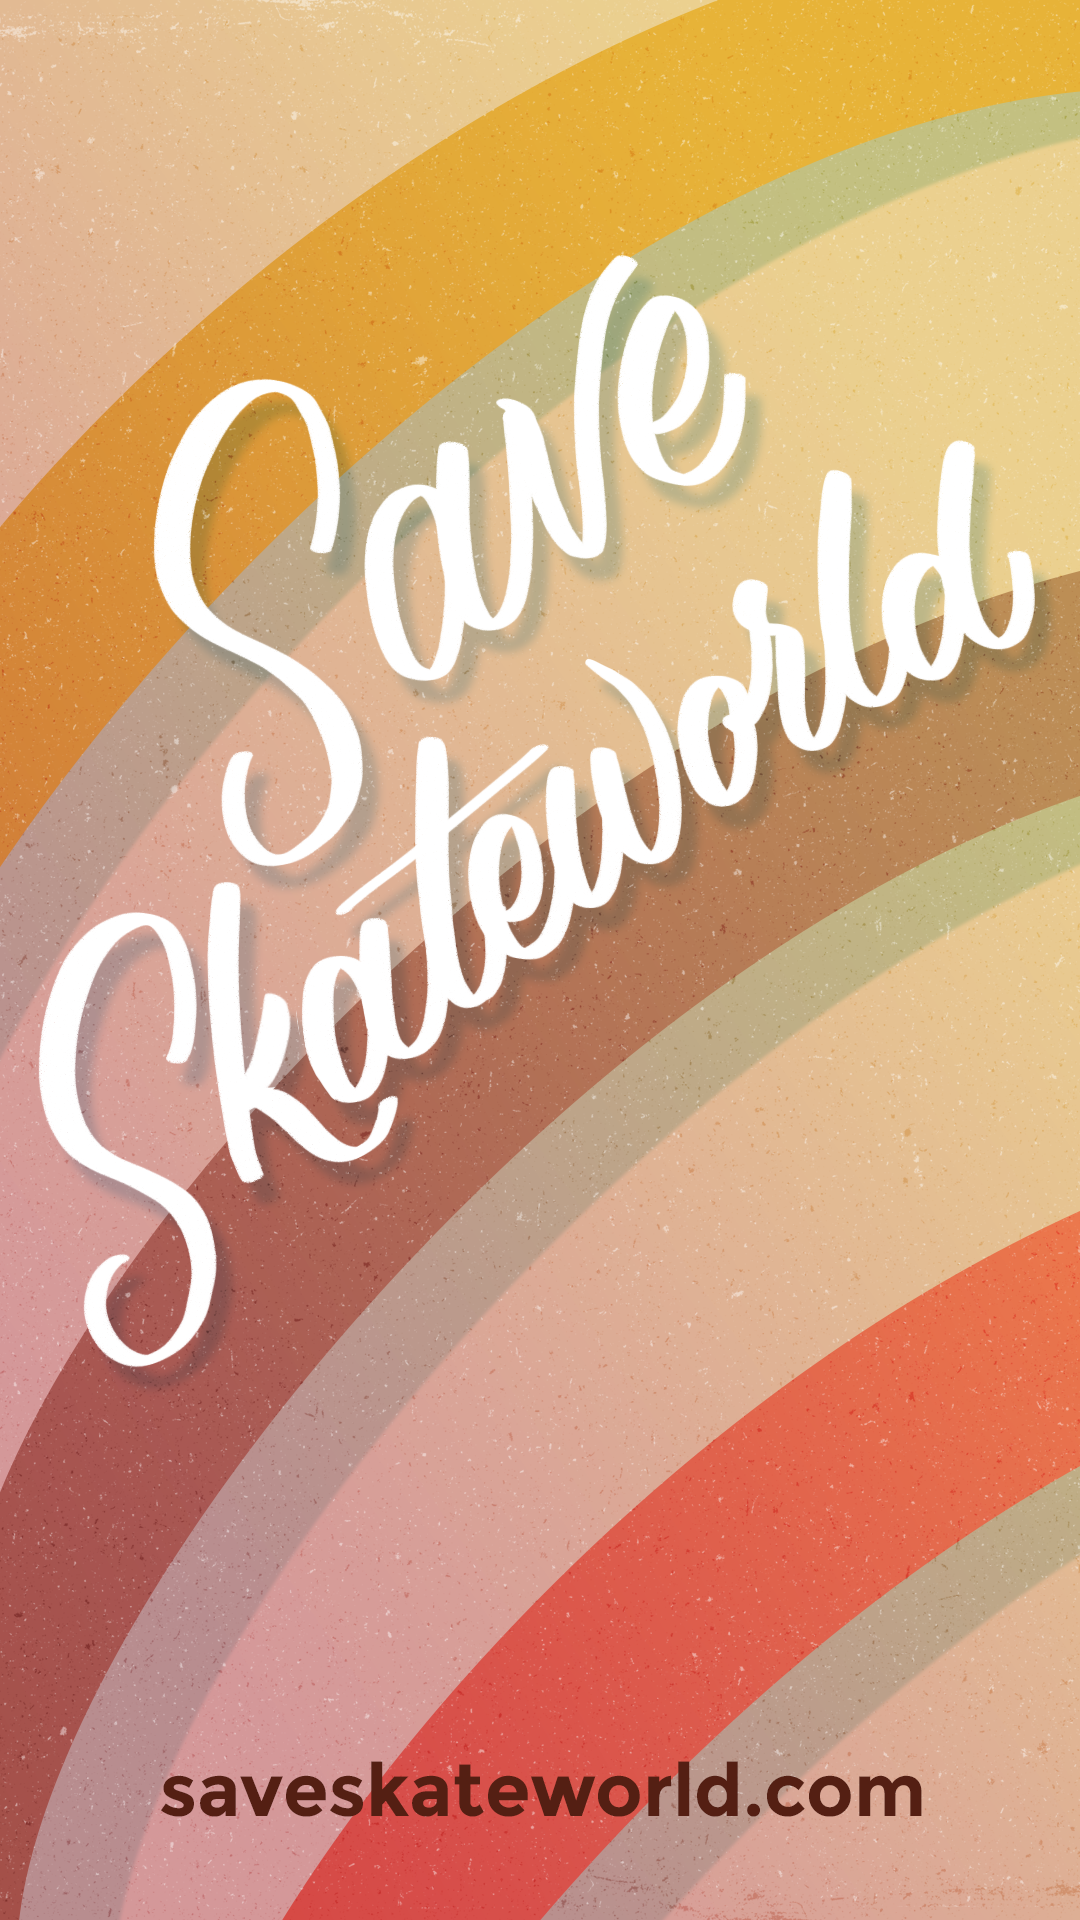 Story-Save-Skateworld.png